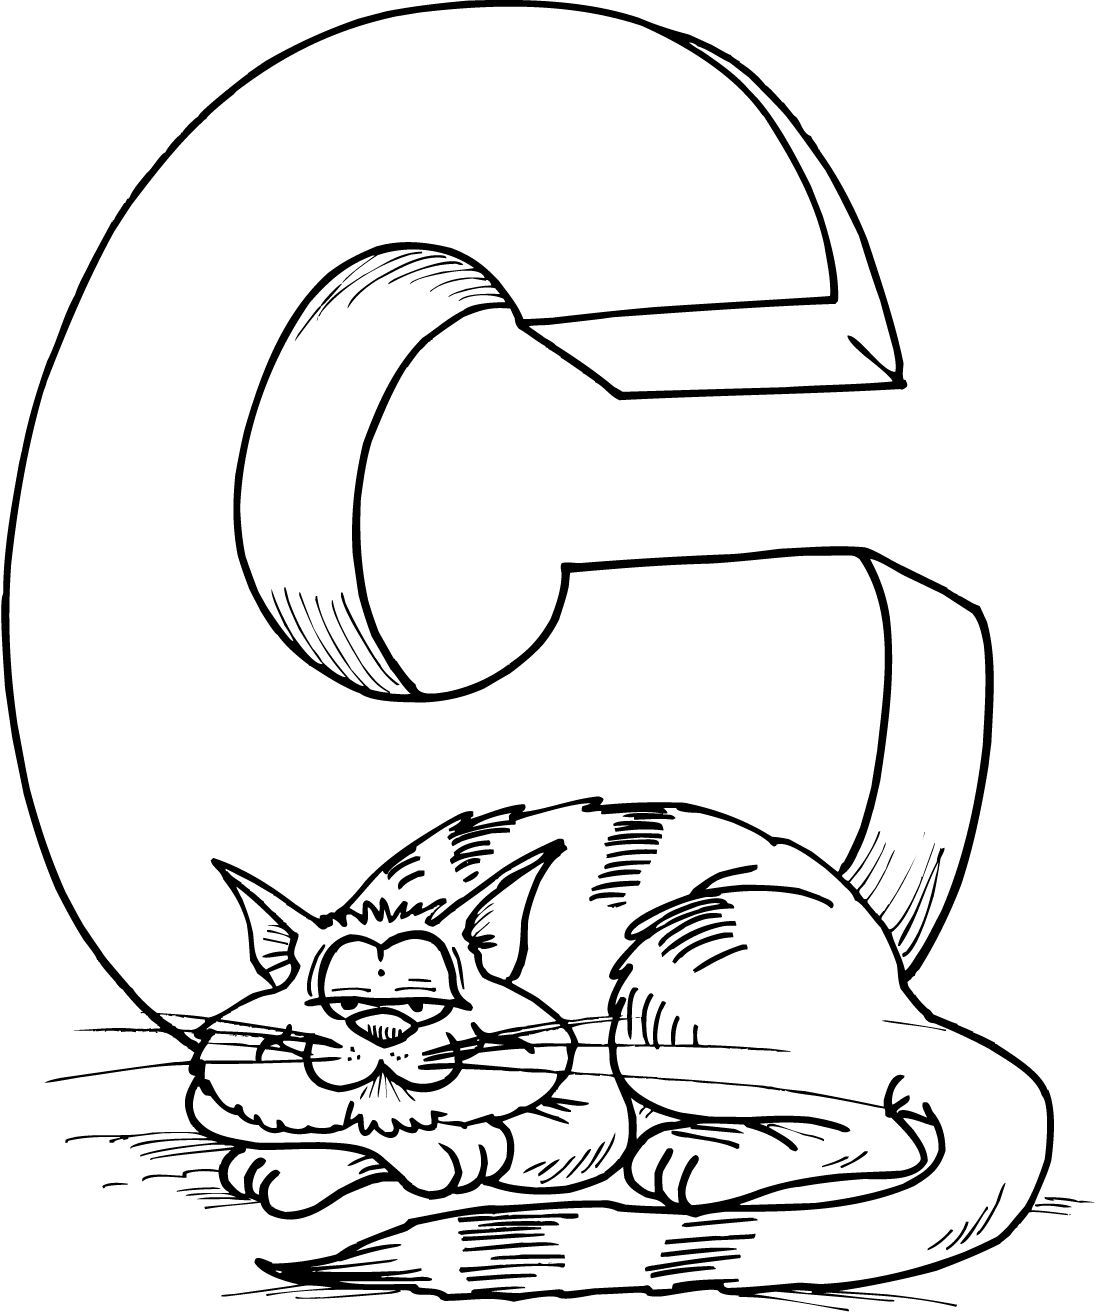 letter x coloring pages - tracing the letter c